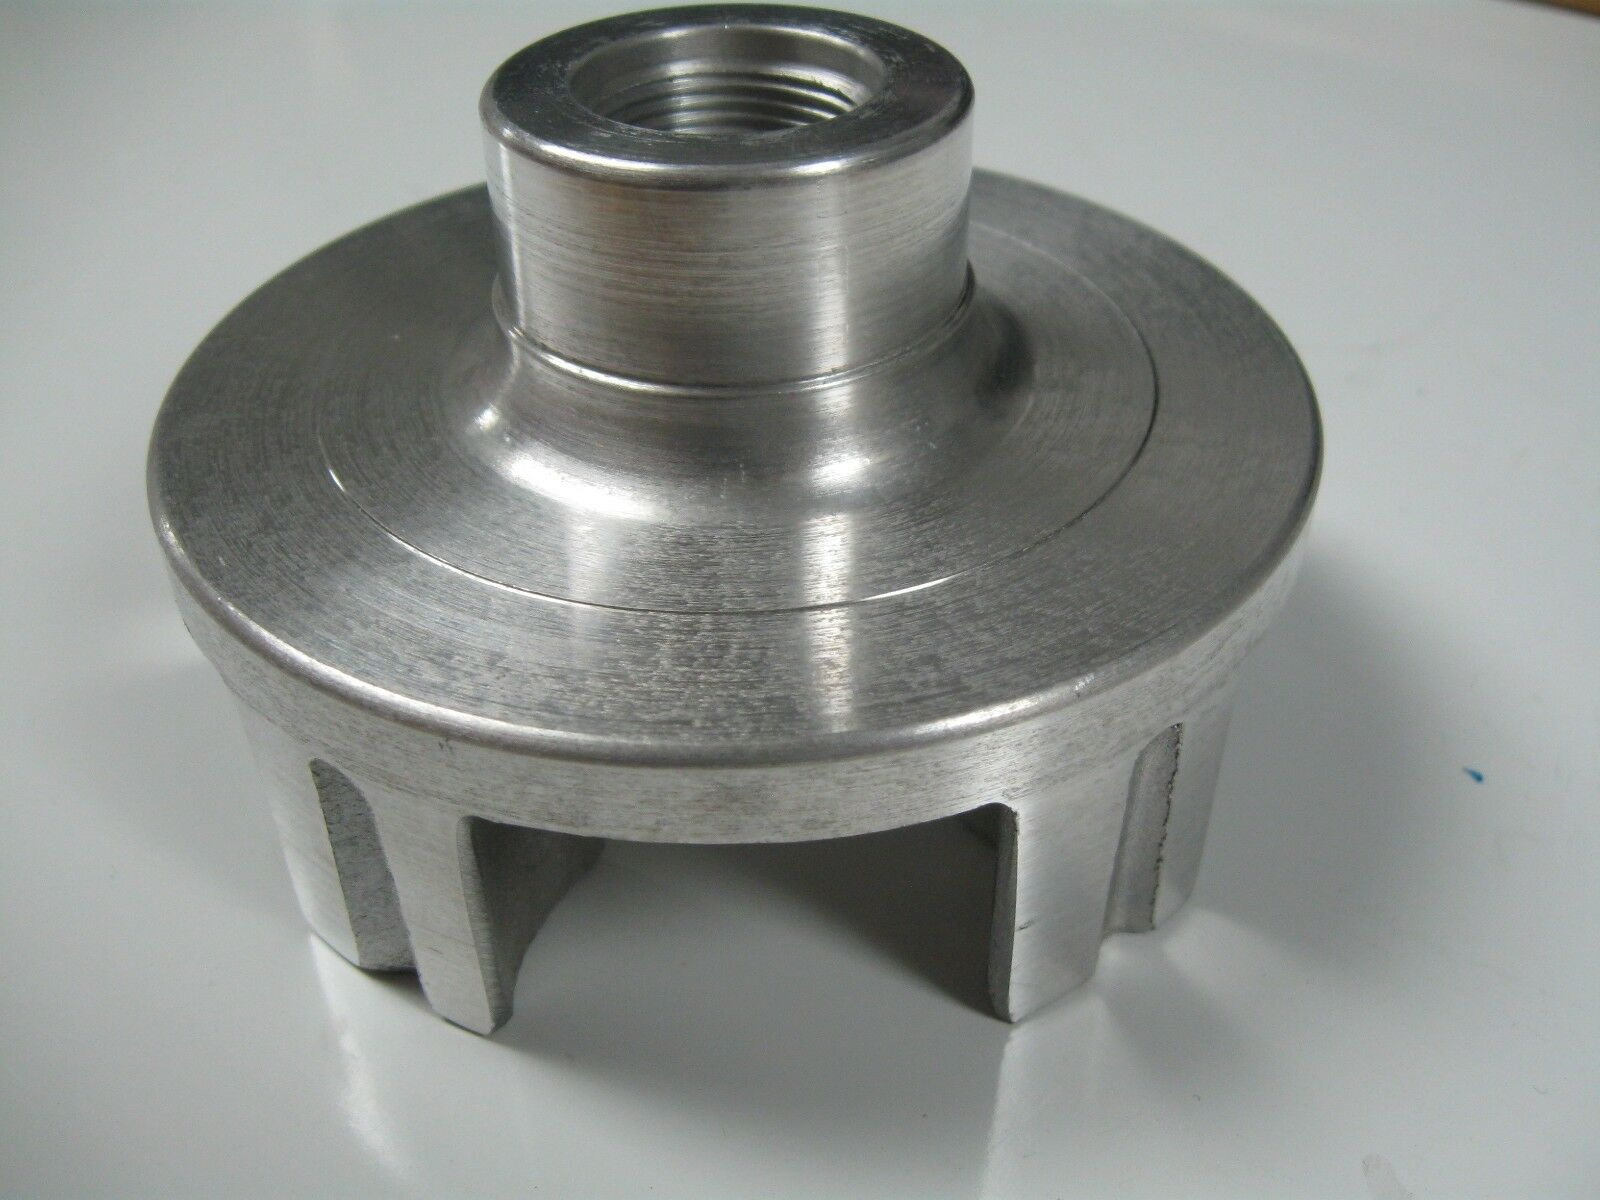 24mm Flange Coupler Curved 5 Finger PWC Yamaha Wave  Runner GP XL 1200  limited edition